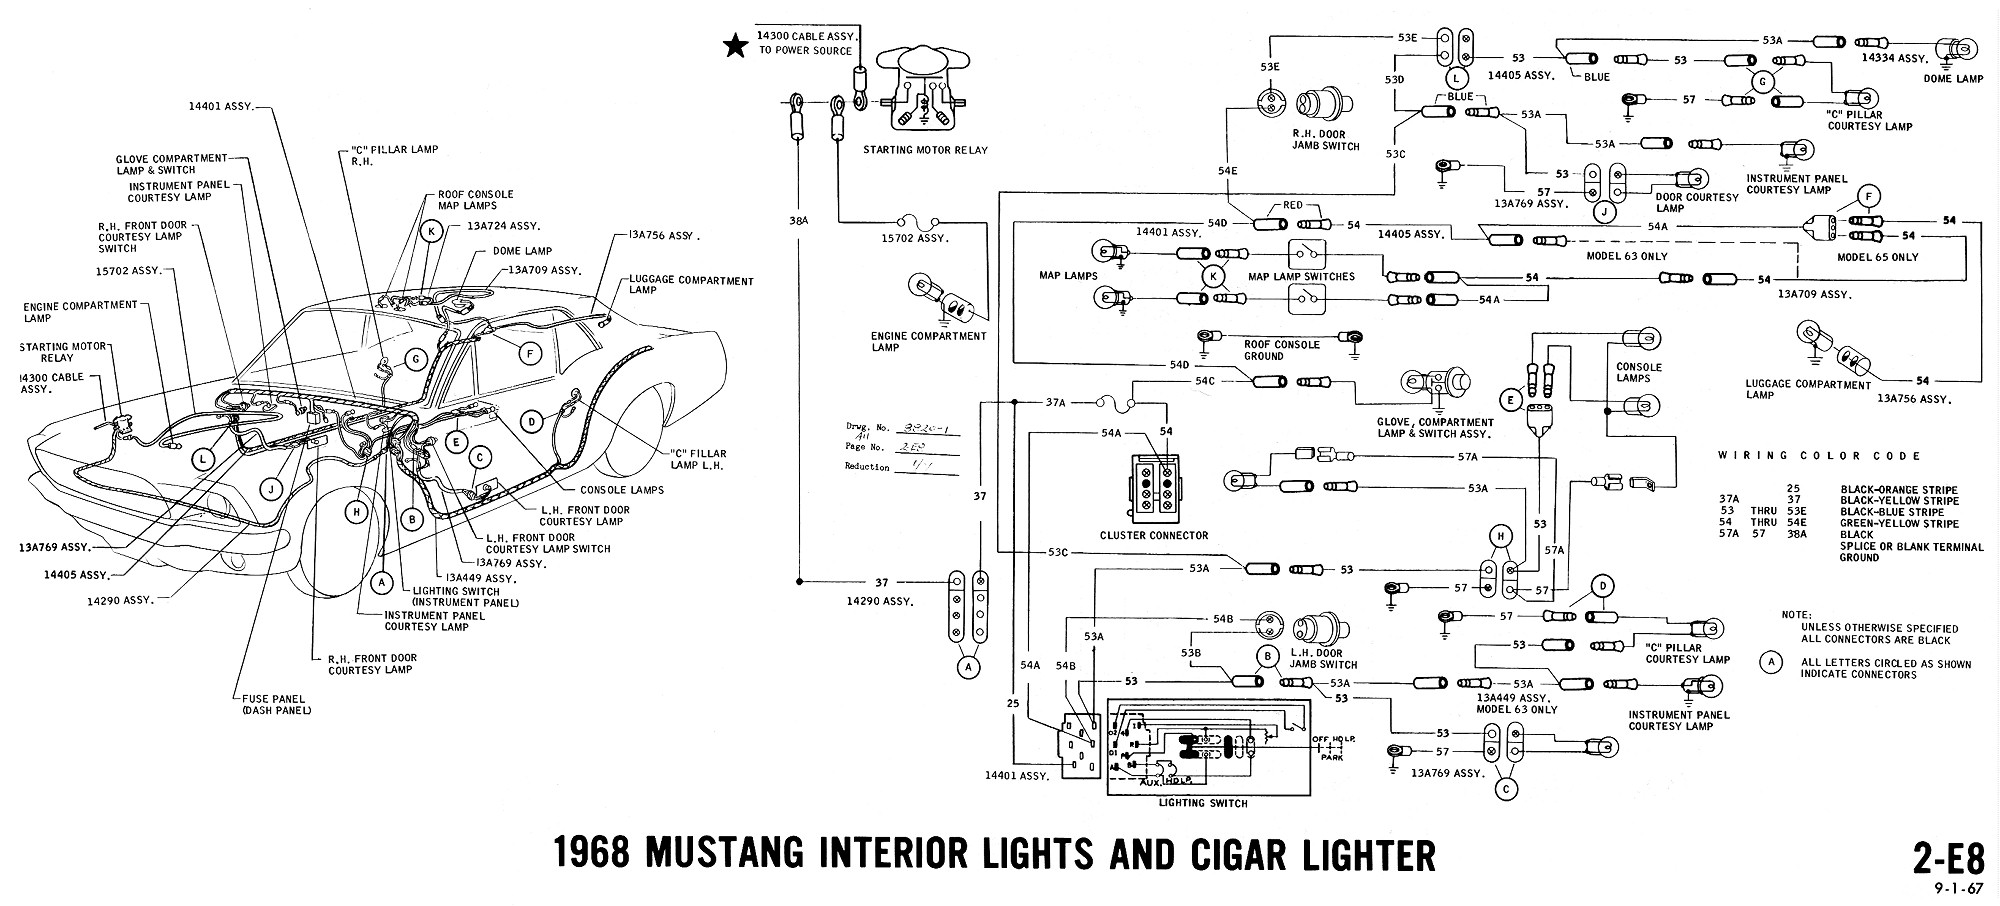 Wiring An Schematic Manual Guide Diagram Simple House Diagrams 1968 Mustang And Vacuum Schematics Average Joe Restoration For Nest Thermostat